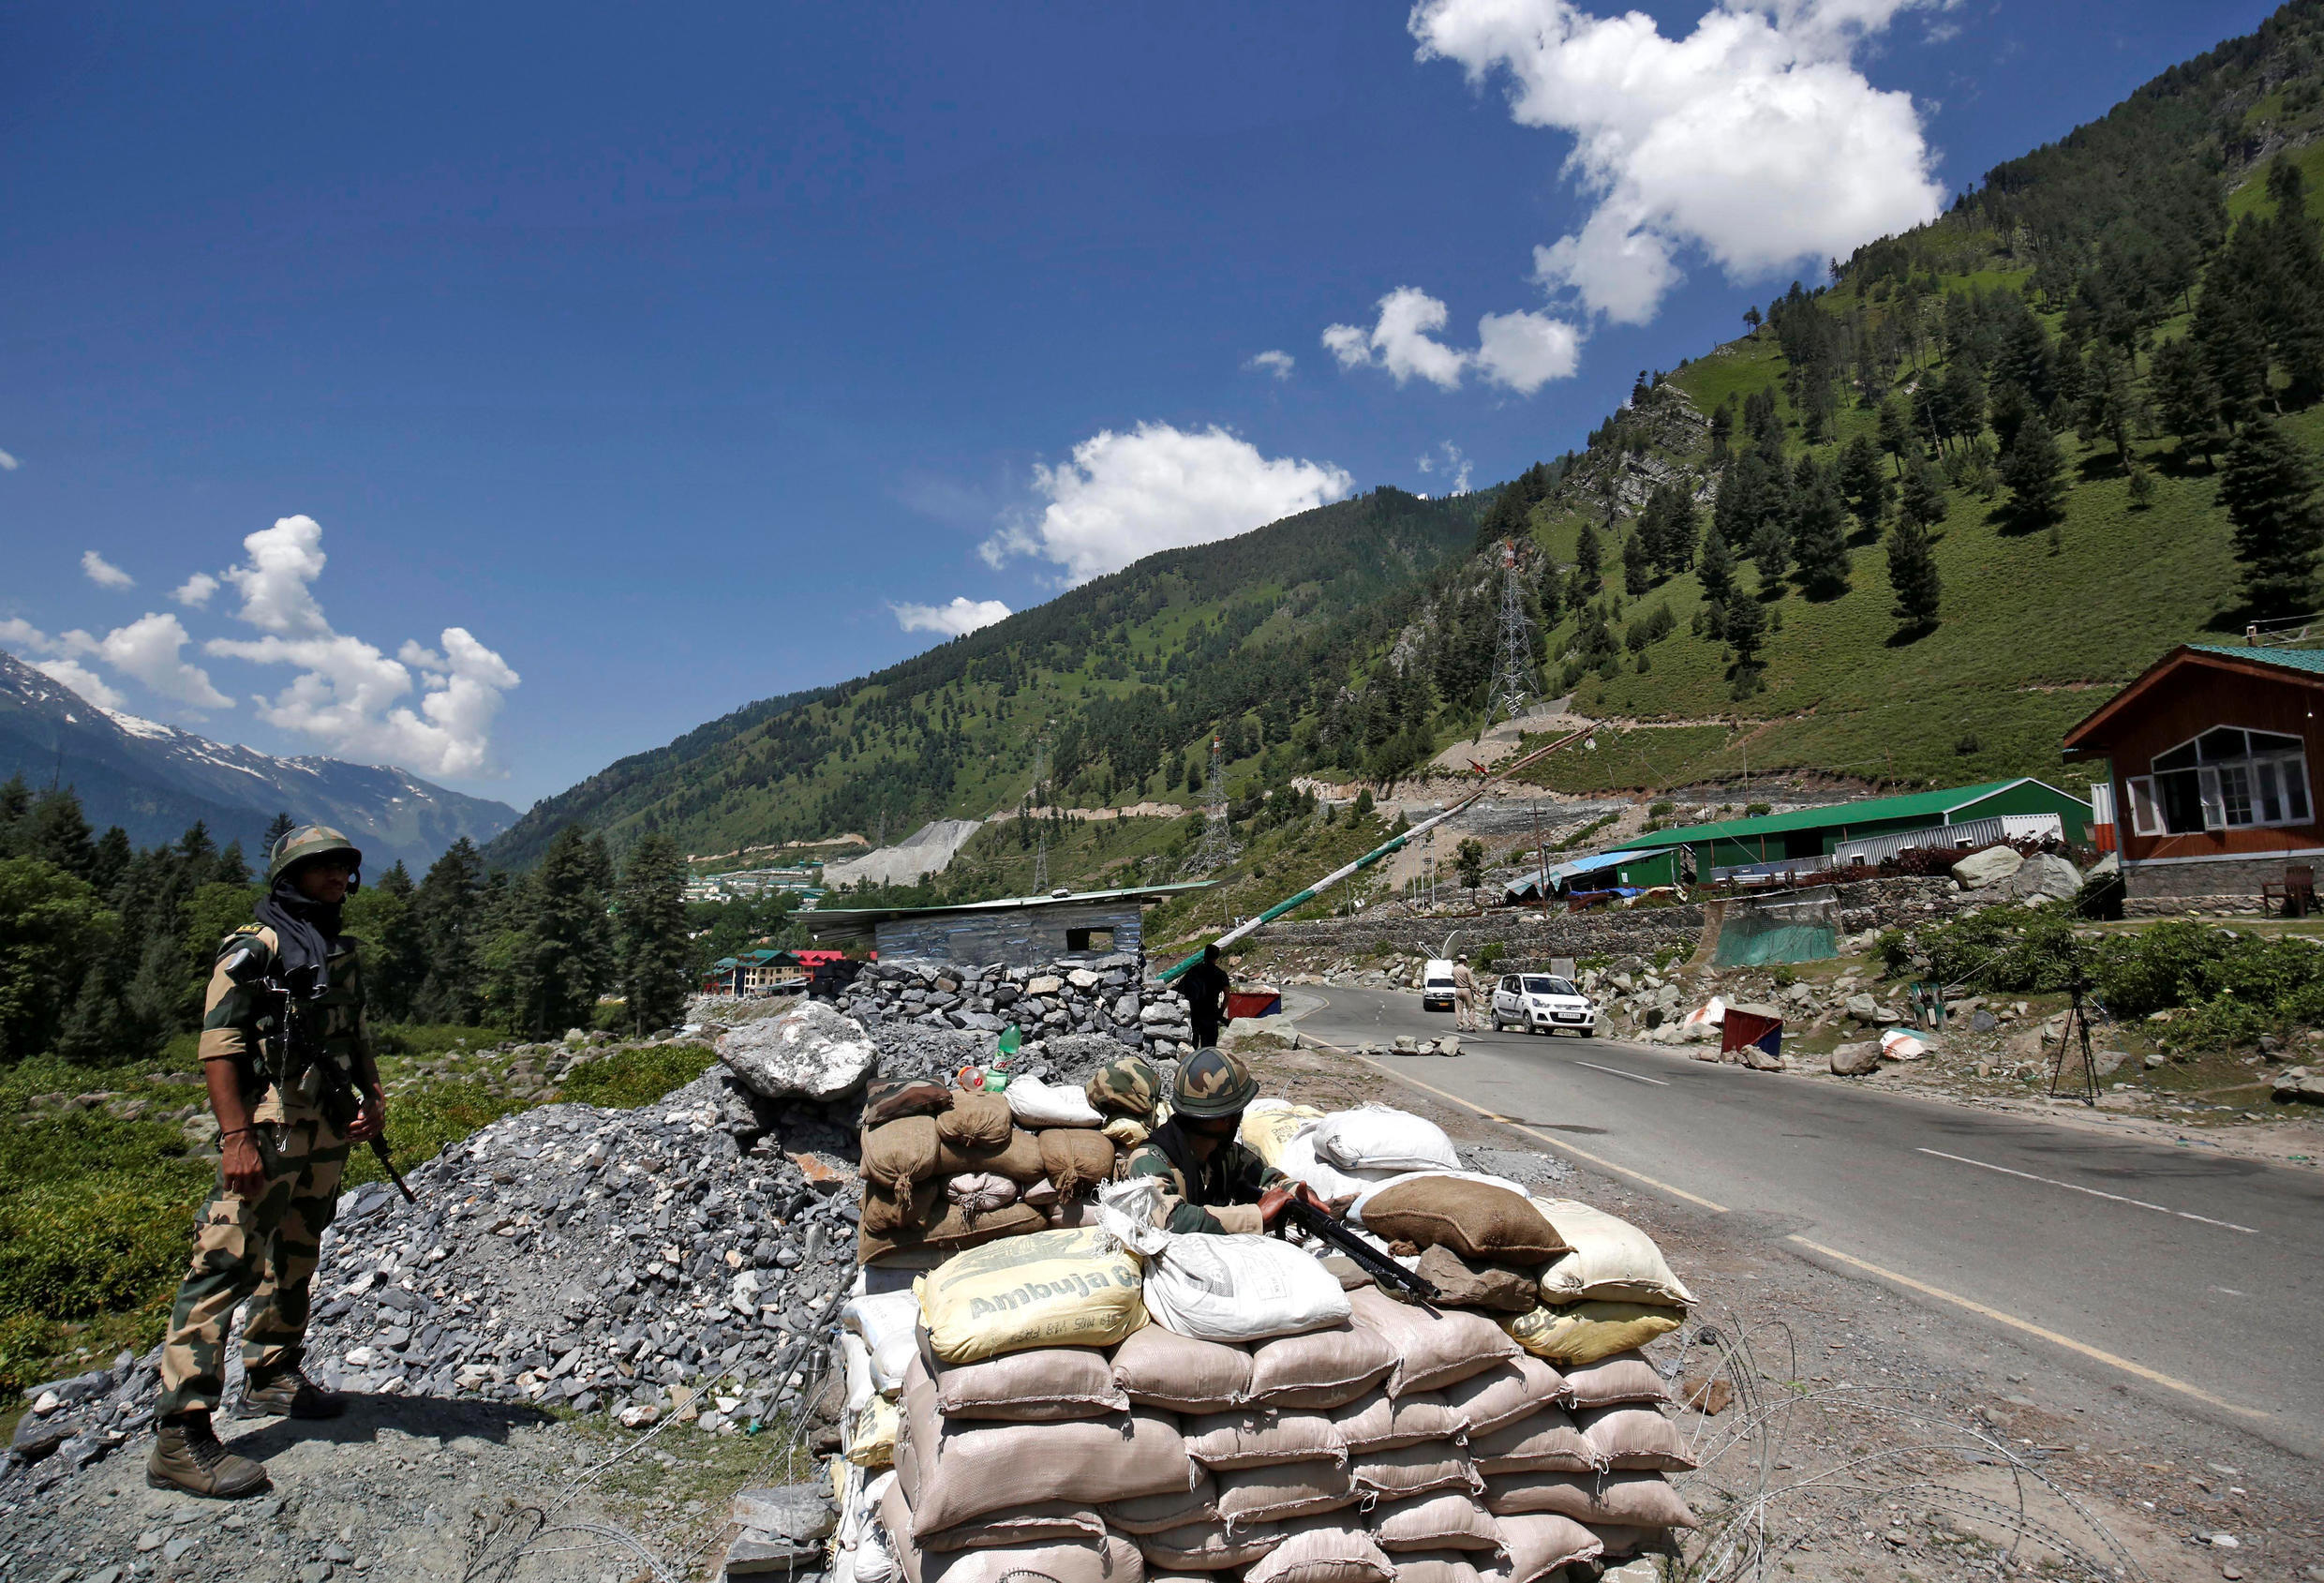 India's Border Security Force (BSF) soldiers stand guard at a checkpoint along a highway leading to Ladakah, at Gagangeer in Kashmir's Ganderbal district June 17, 2020.